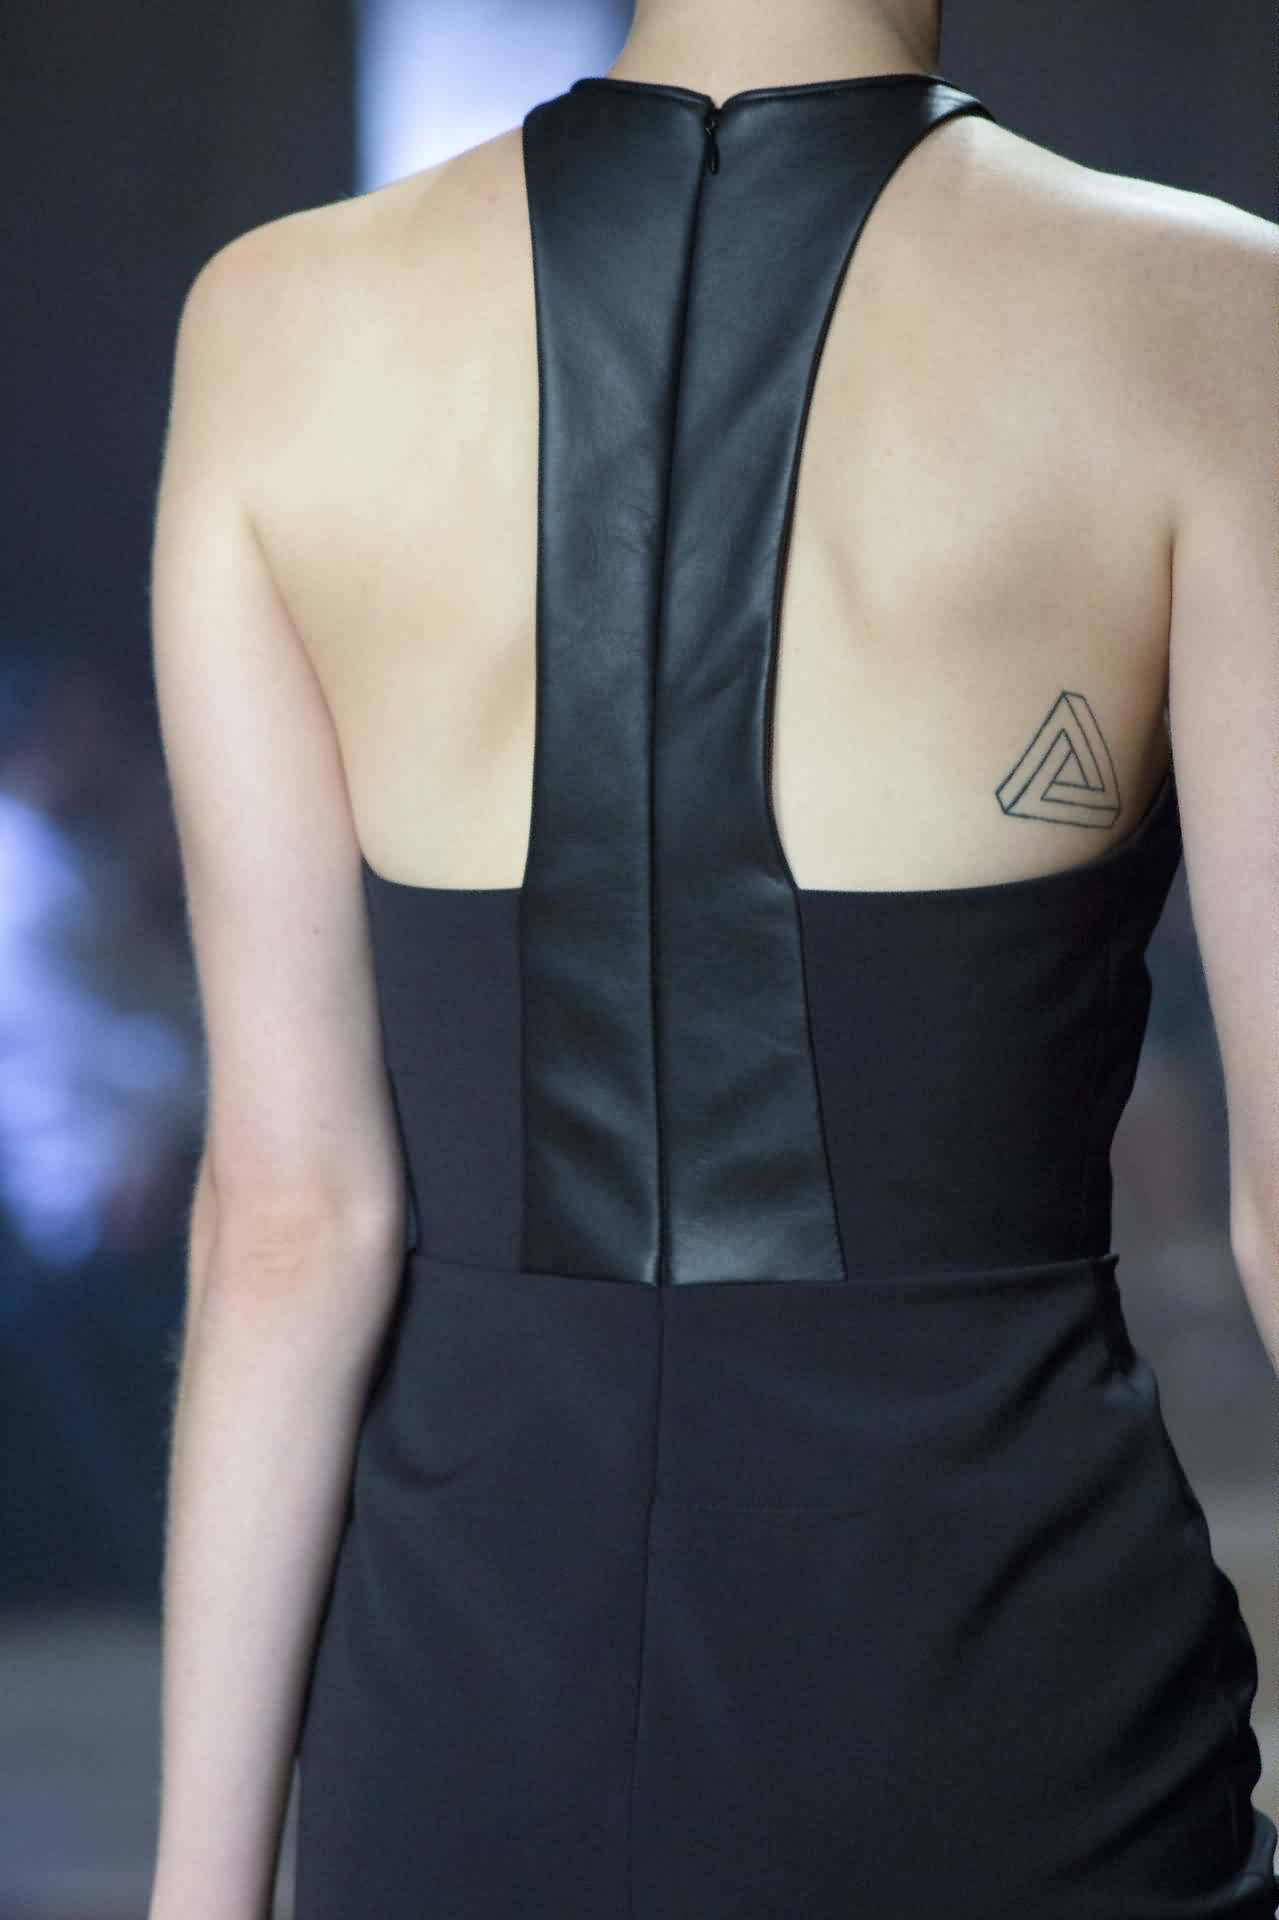 Outline Penrose Triangle Tattoo On Right Back Shoulder